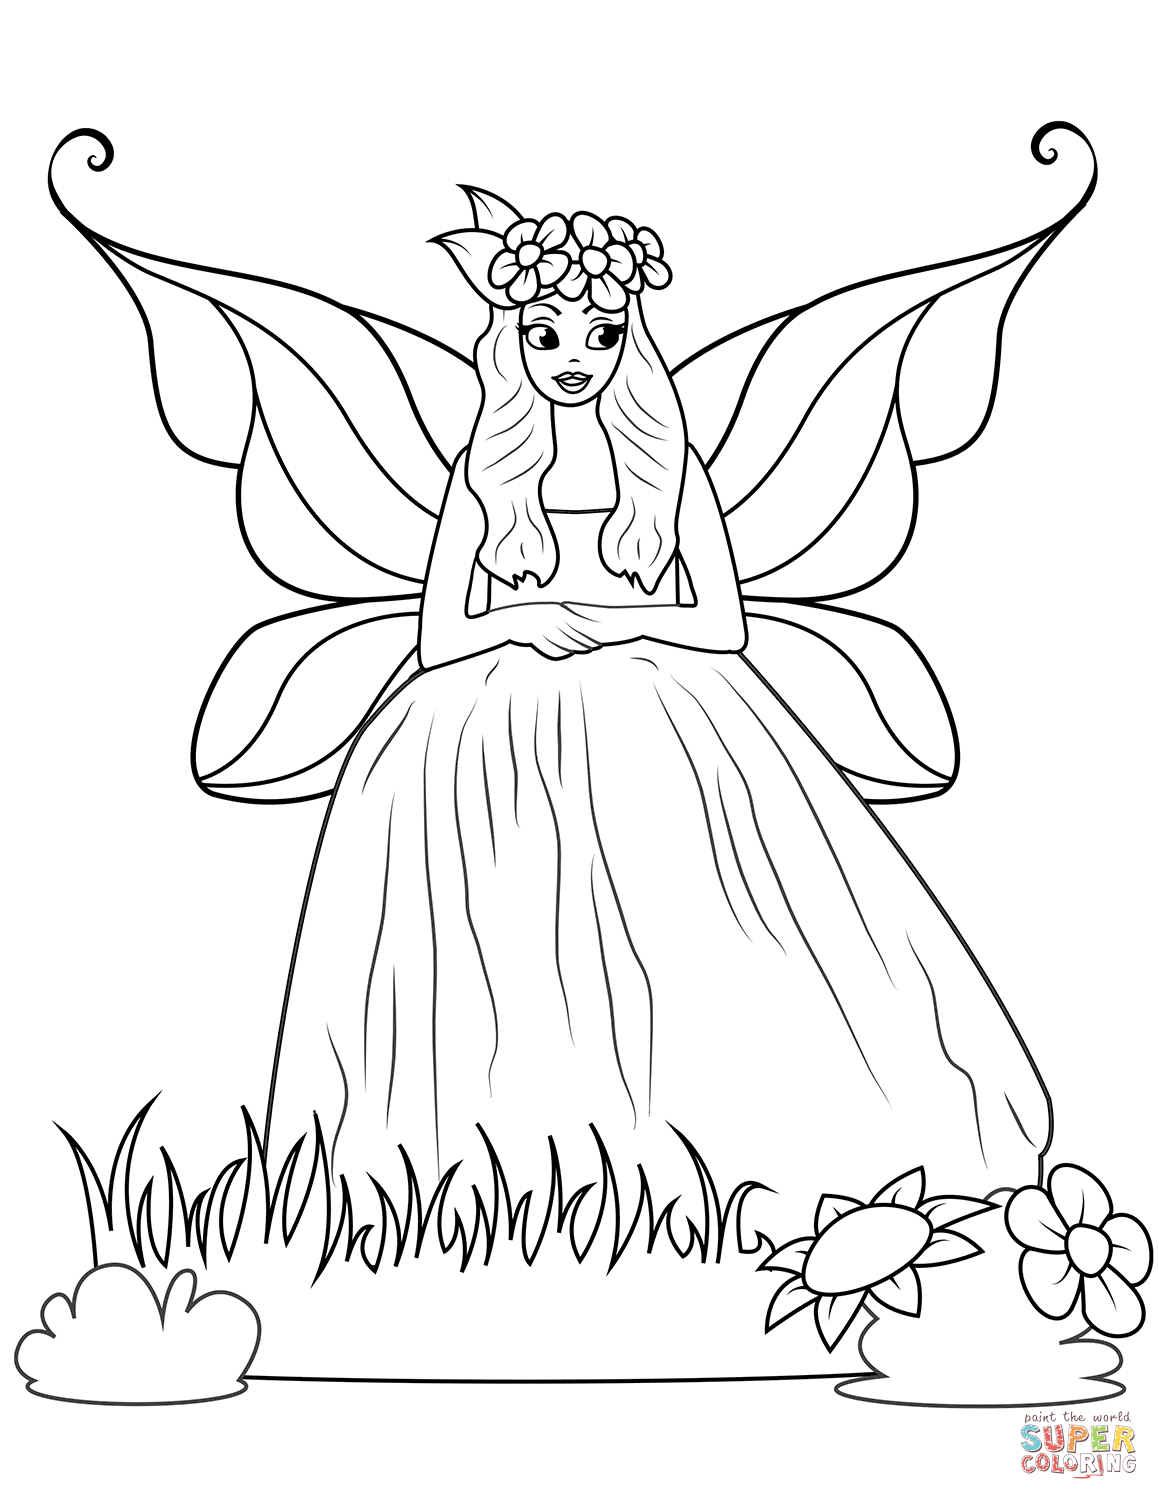 Fairy In Ball Gown Dress Coloring Page Free Printable